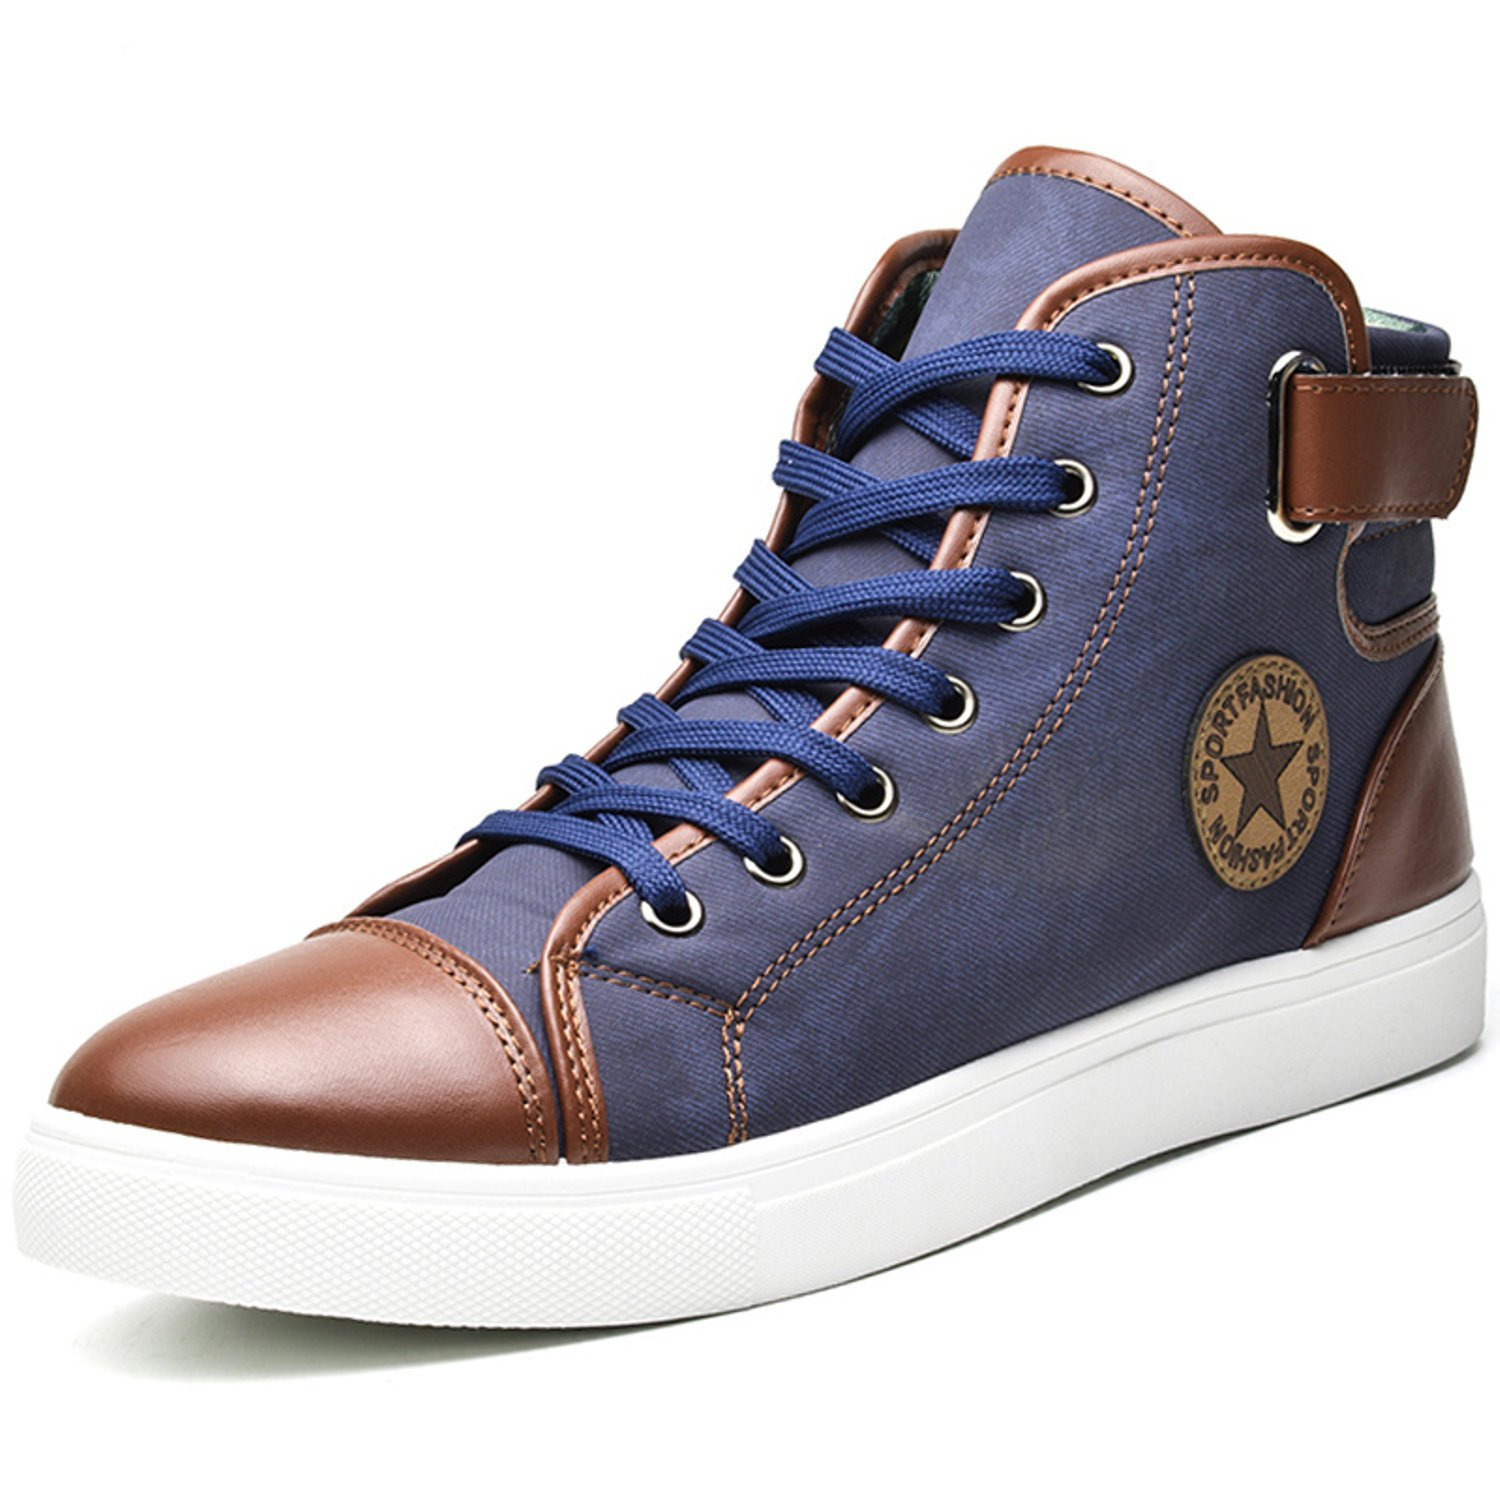 Jacky's Sapatos Tenis Masculino Male Autumn Winter Front Lace-Up Leather Ankle Boots Shoes Man Casual High Top Canvas Men (9, Blue)